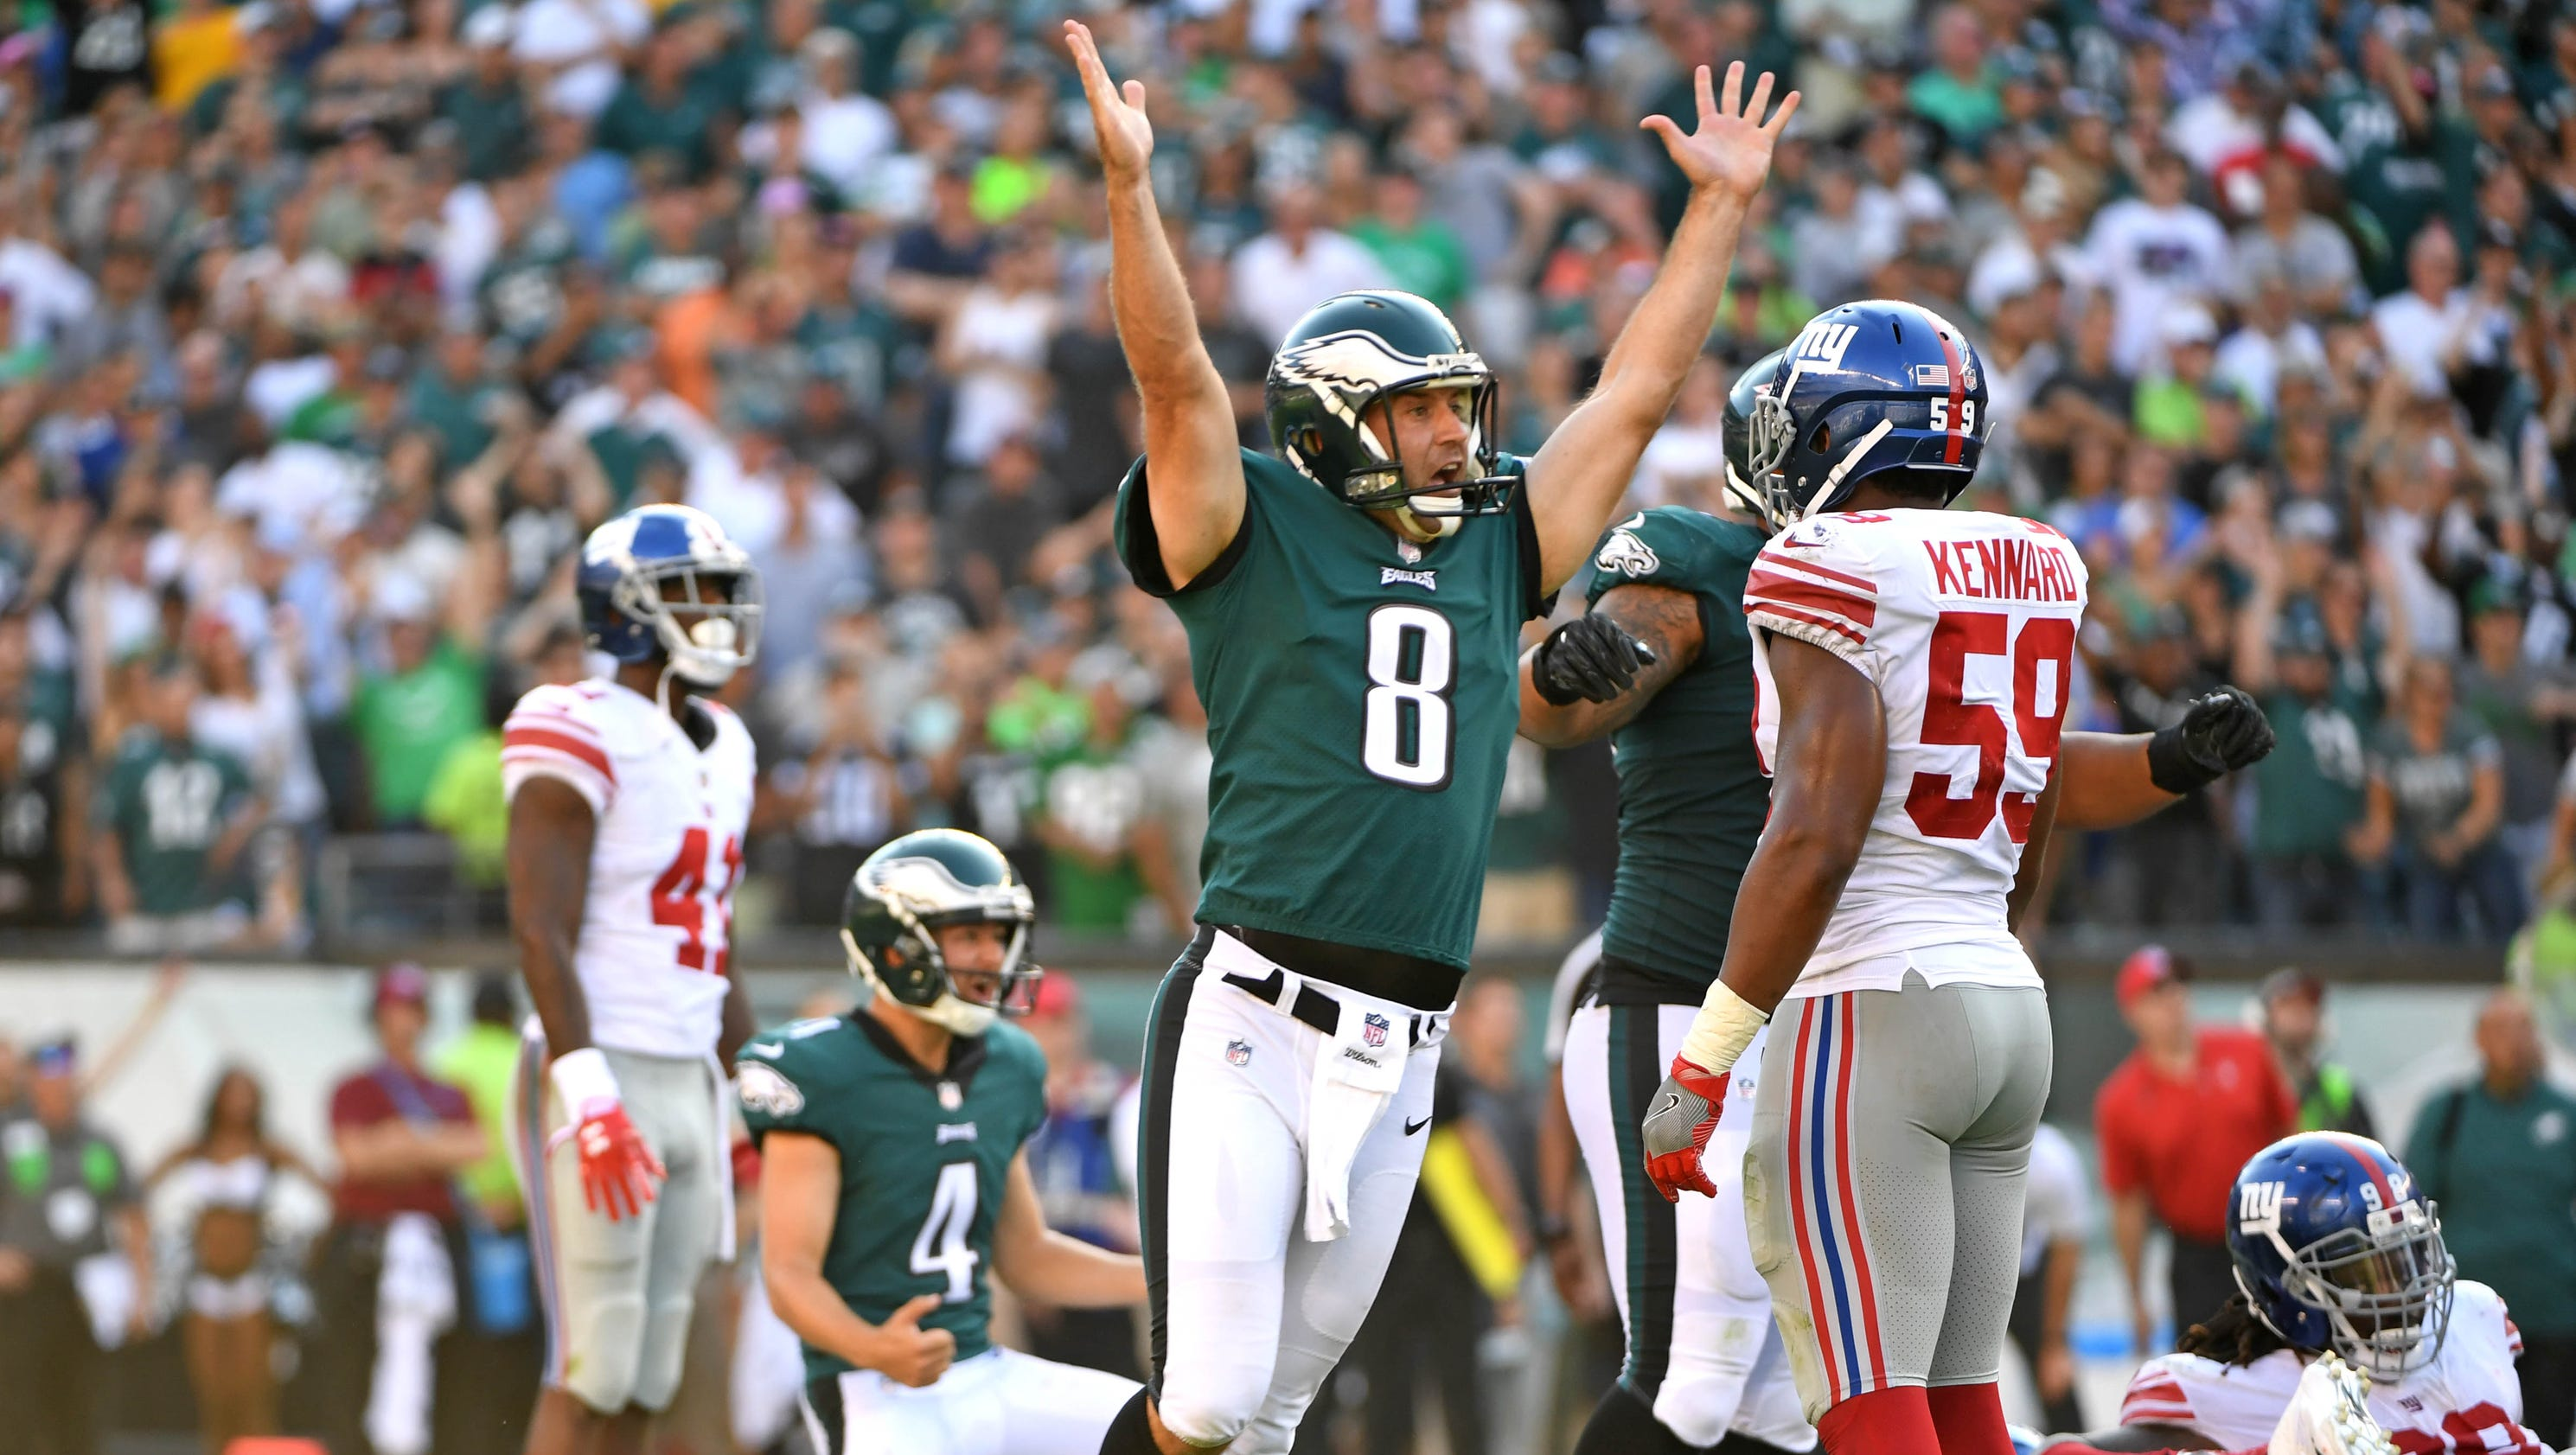 636418846687085957-usp-nfl--new-york-giants-at-philadelphia-eagles